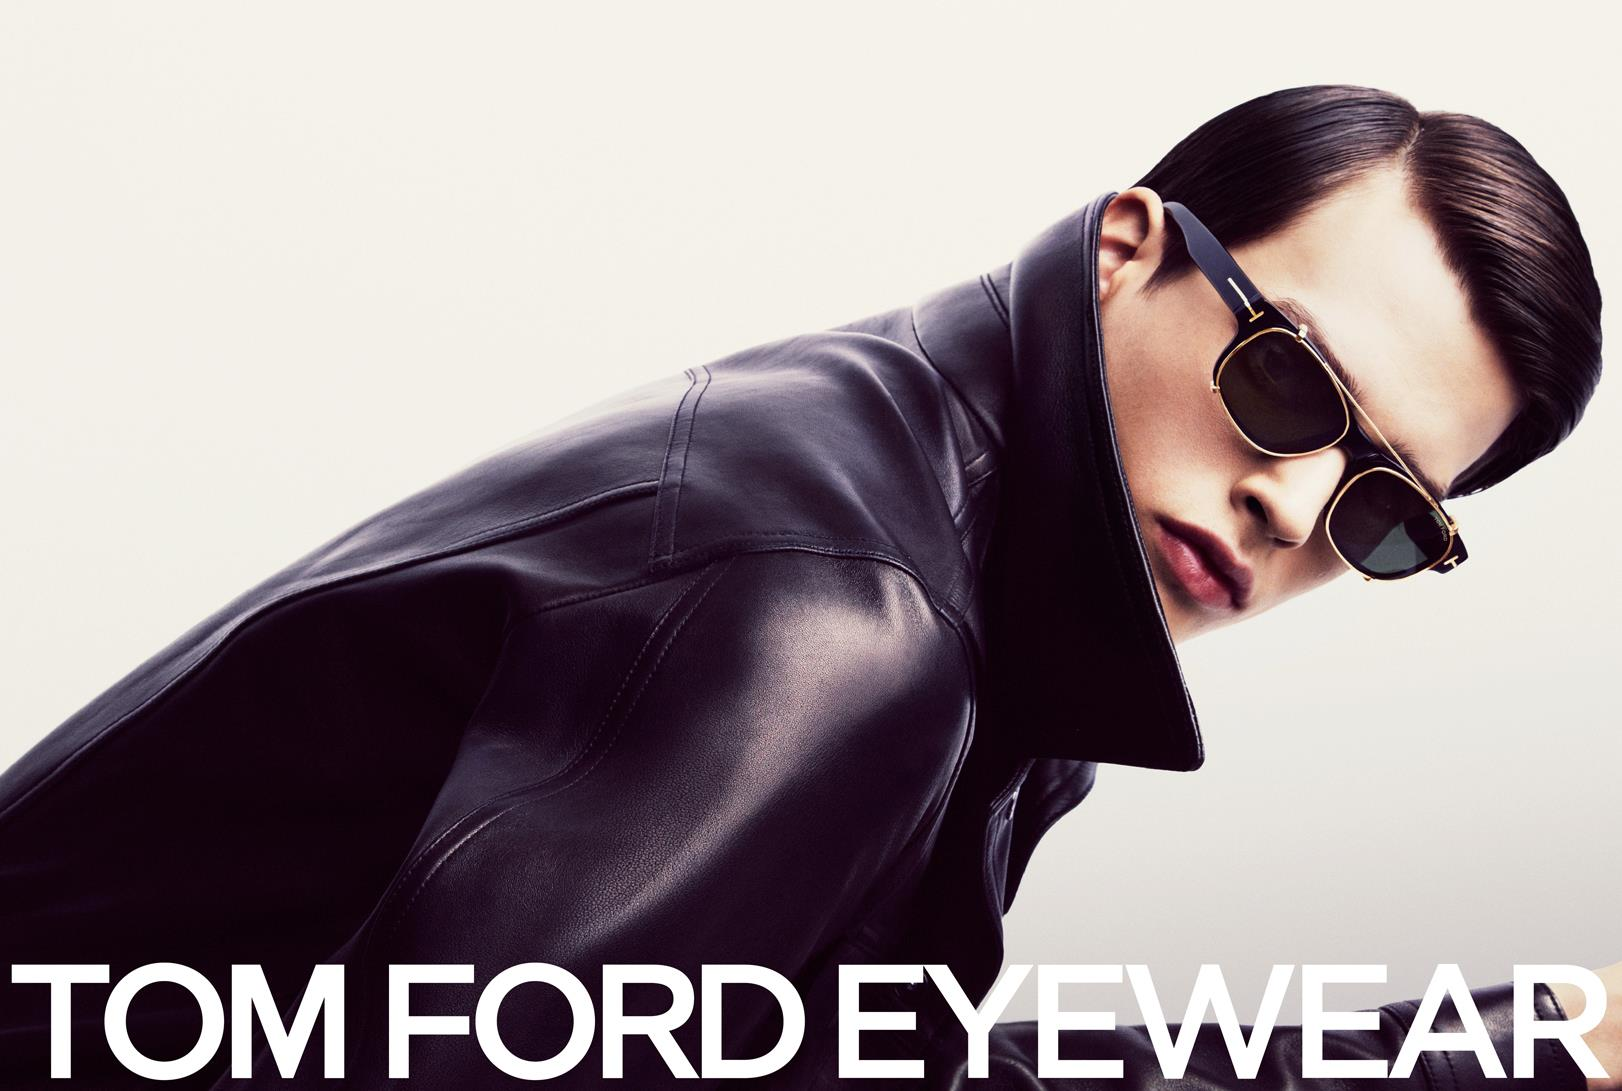 TOM FORD Spring/Summer 2013 Ad Campaign: Karlina Caune and Simon Van Meervenne (Hi Res) TFE SS13 CAMPAIGN 4